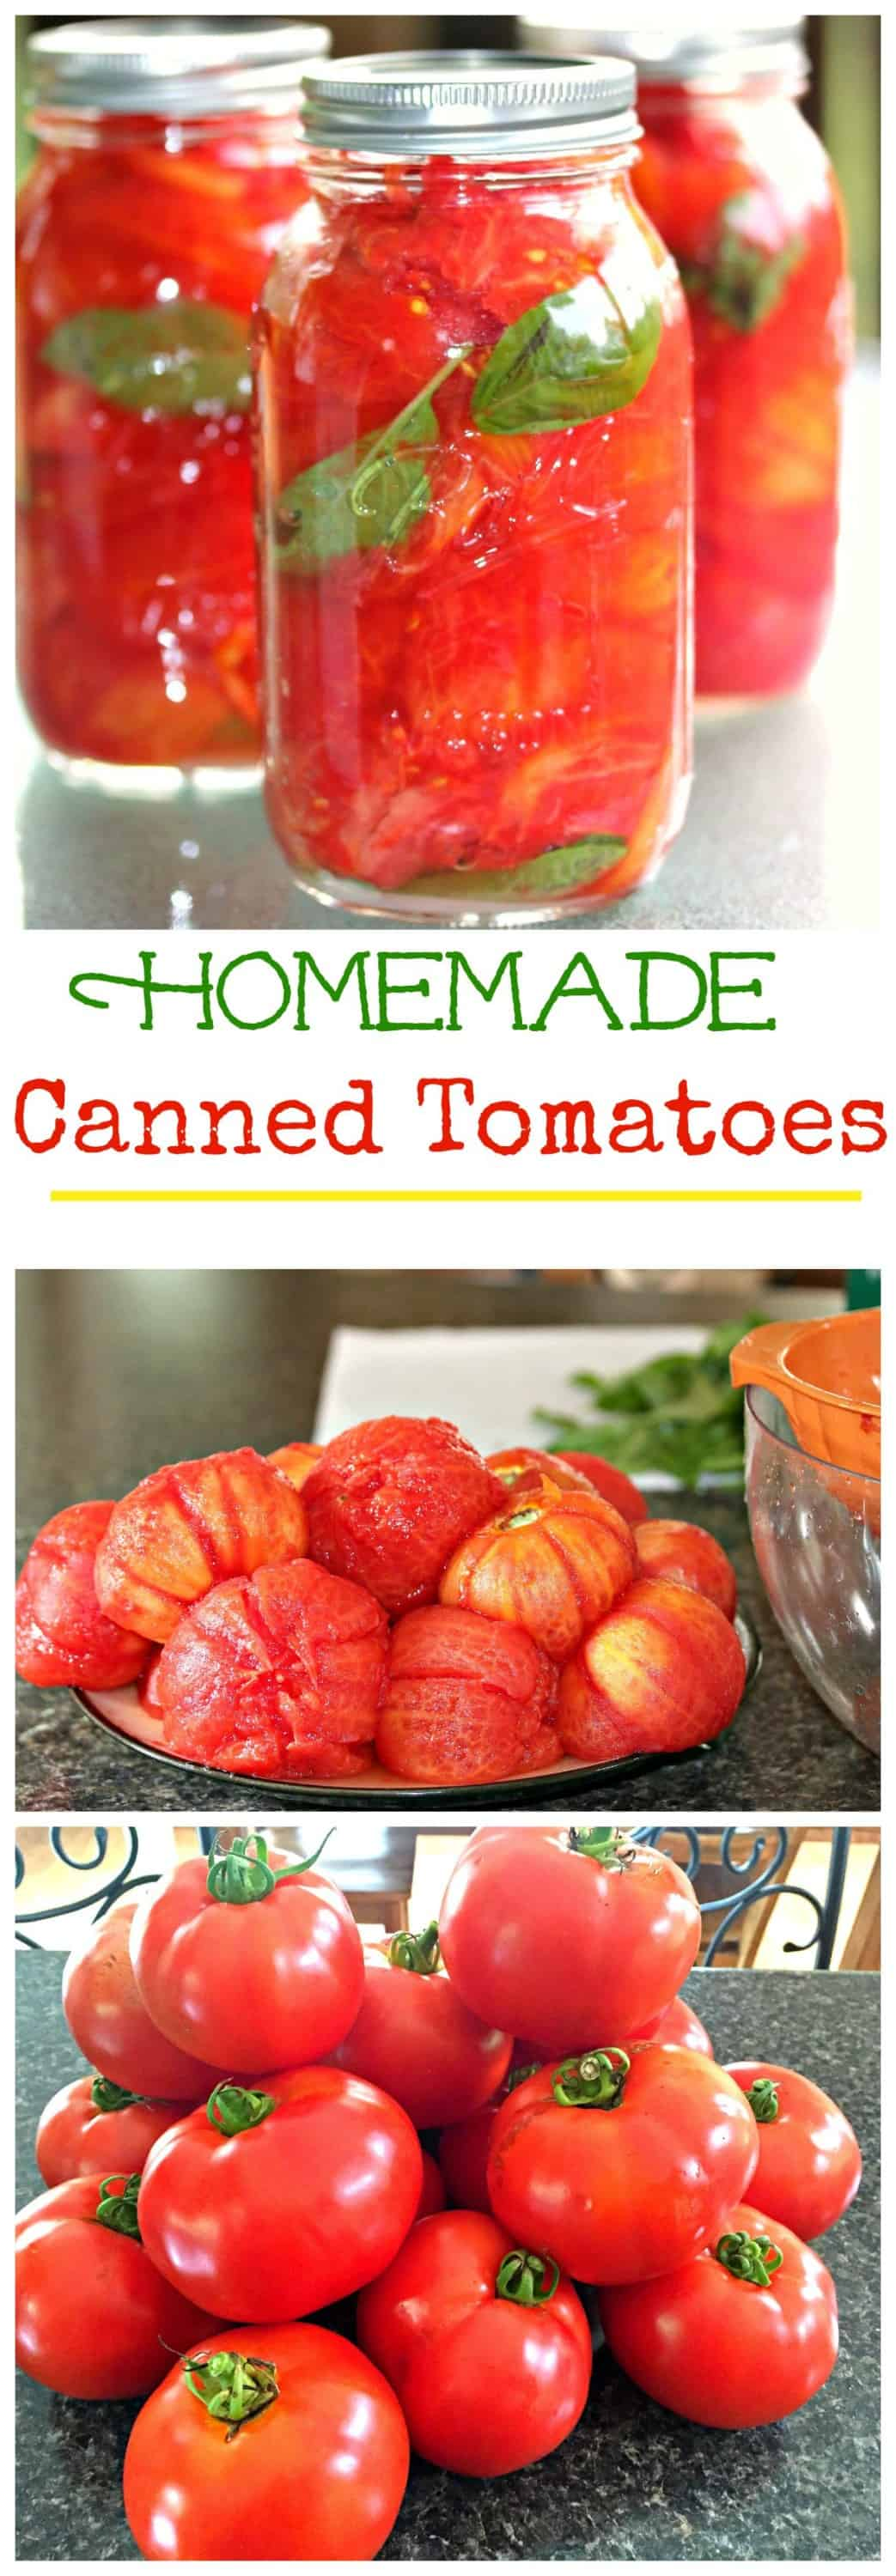 These homemade canned tomatoes are the best way to keep your garden tomatoes fresh and ready to eat and cook with all year long! #cannedtomatoes #tomatoes #gardening #vegetables #canning #healthy #fresh